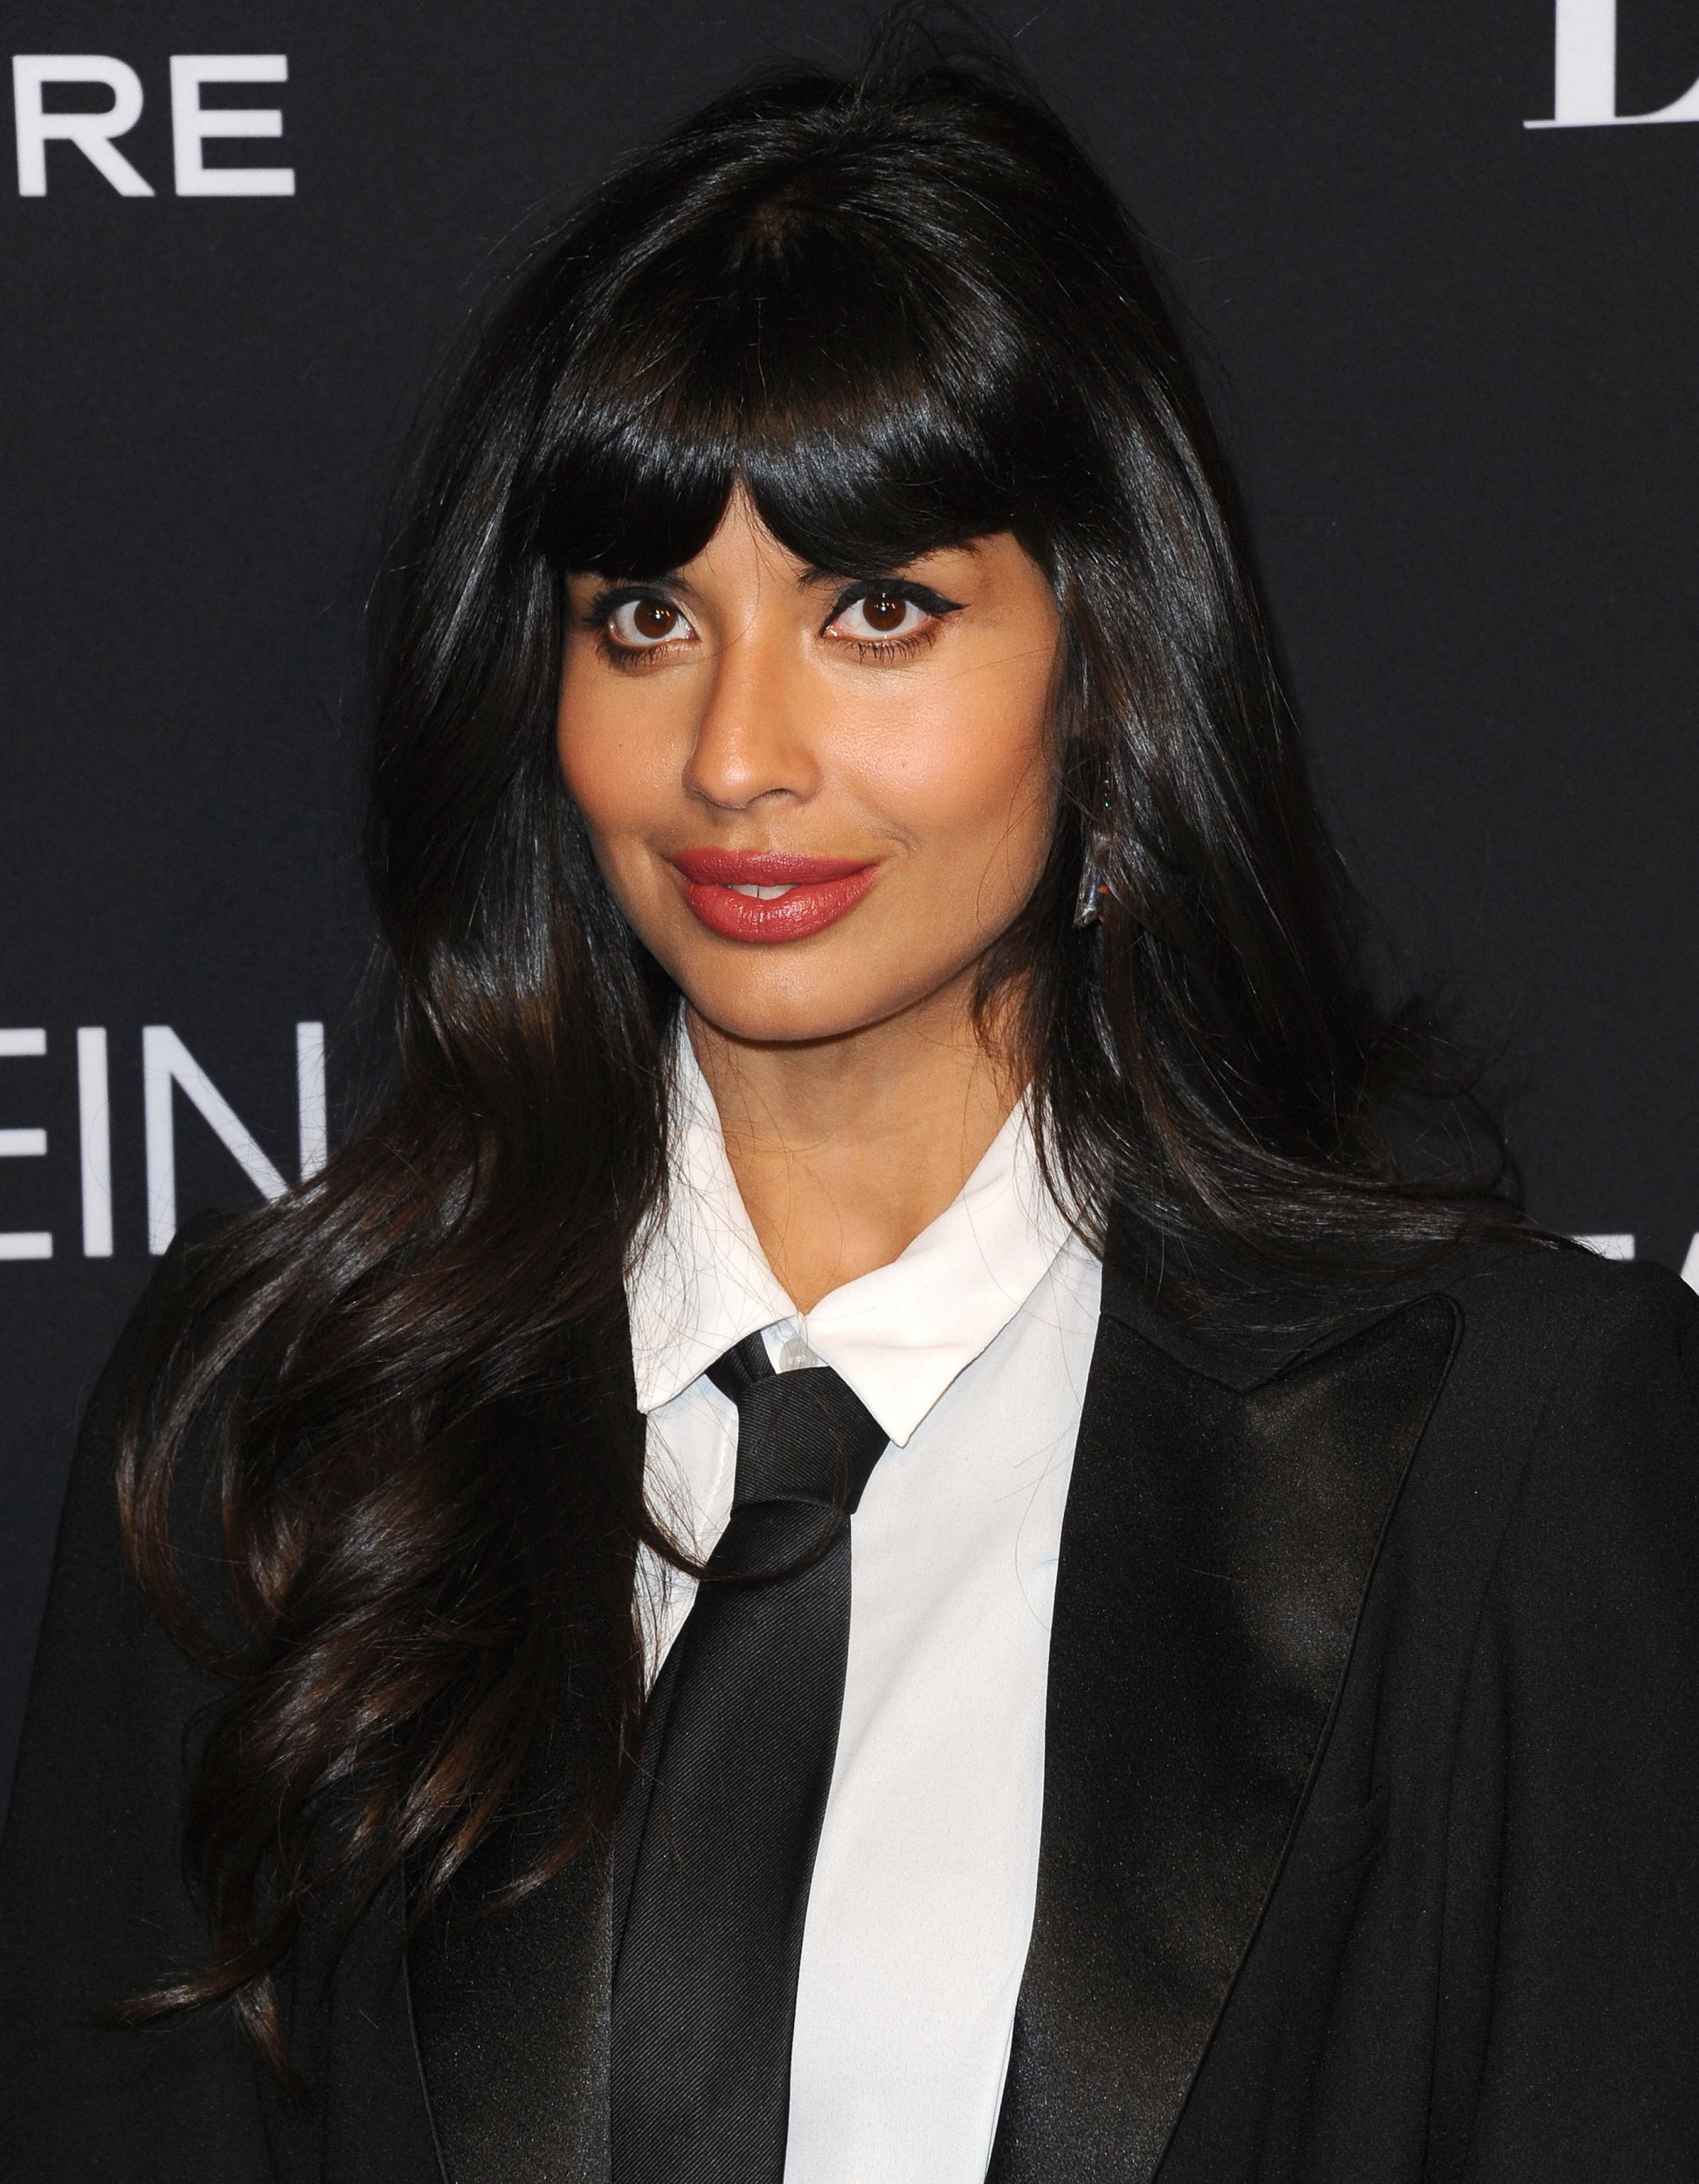 Mandatory Credit: Photo by Startraks Photo/REX/Shutterstock (9933706ch) Jameela Jamil Elle Women in Hollywood, Arrivals, Los Angeles, USA - 15 Oct 2018 25th Annual Elle Women in Hollywood Celebration